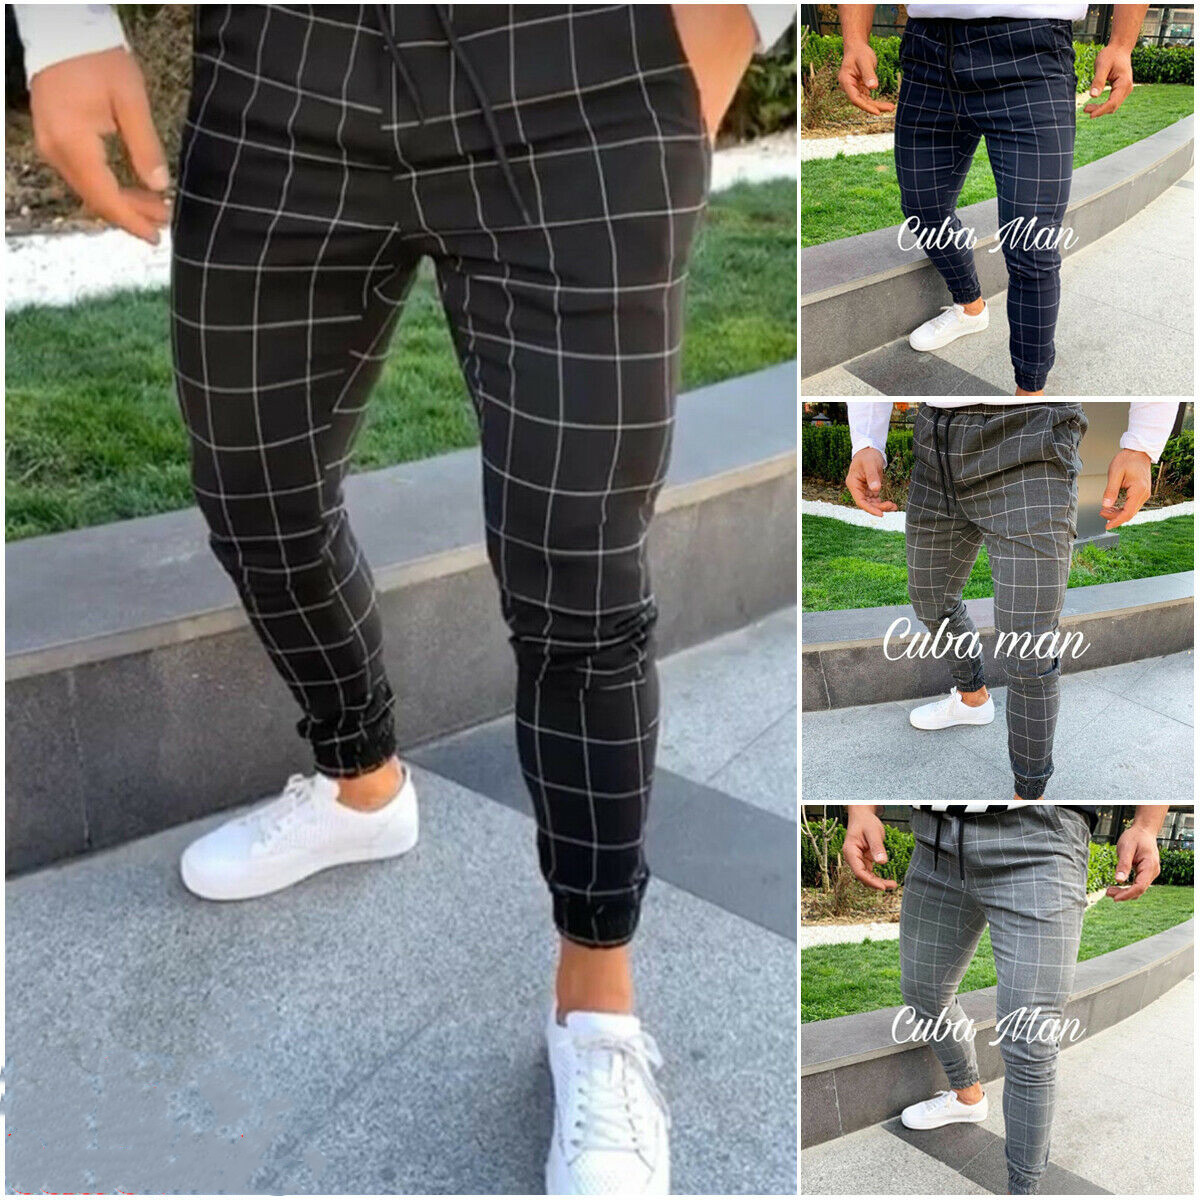 2019 Brand New Fashion Men's Plaid Twill Jogger Pants Urban Hip Hop Harem Casual Trousers Slim